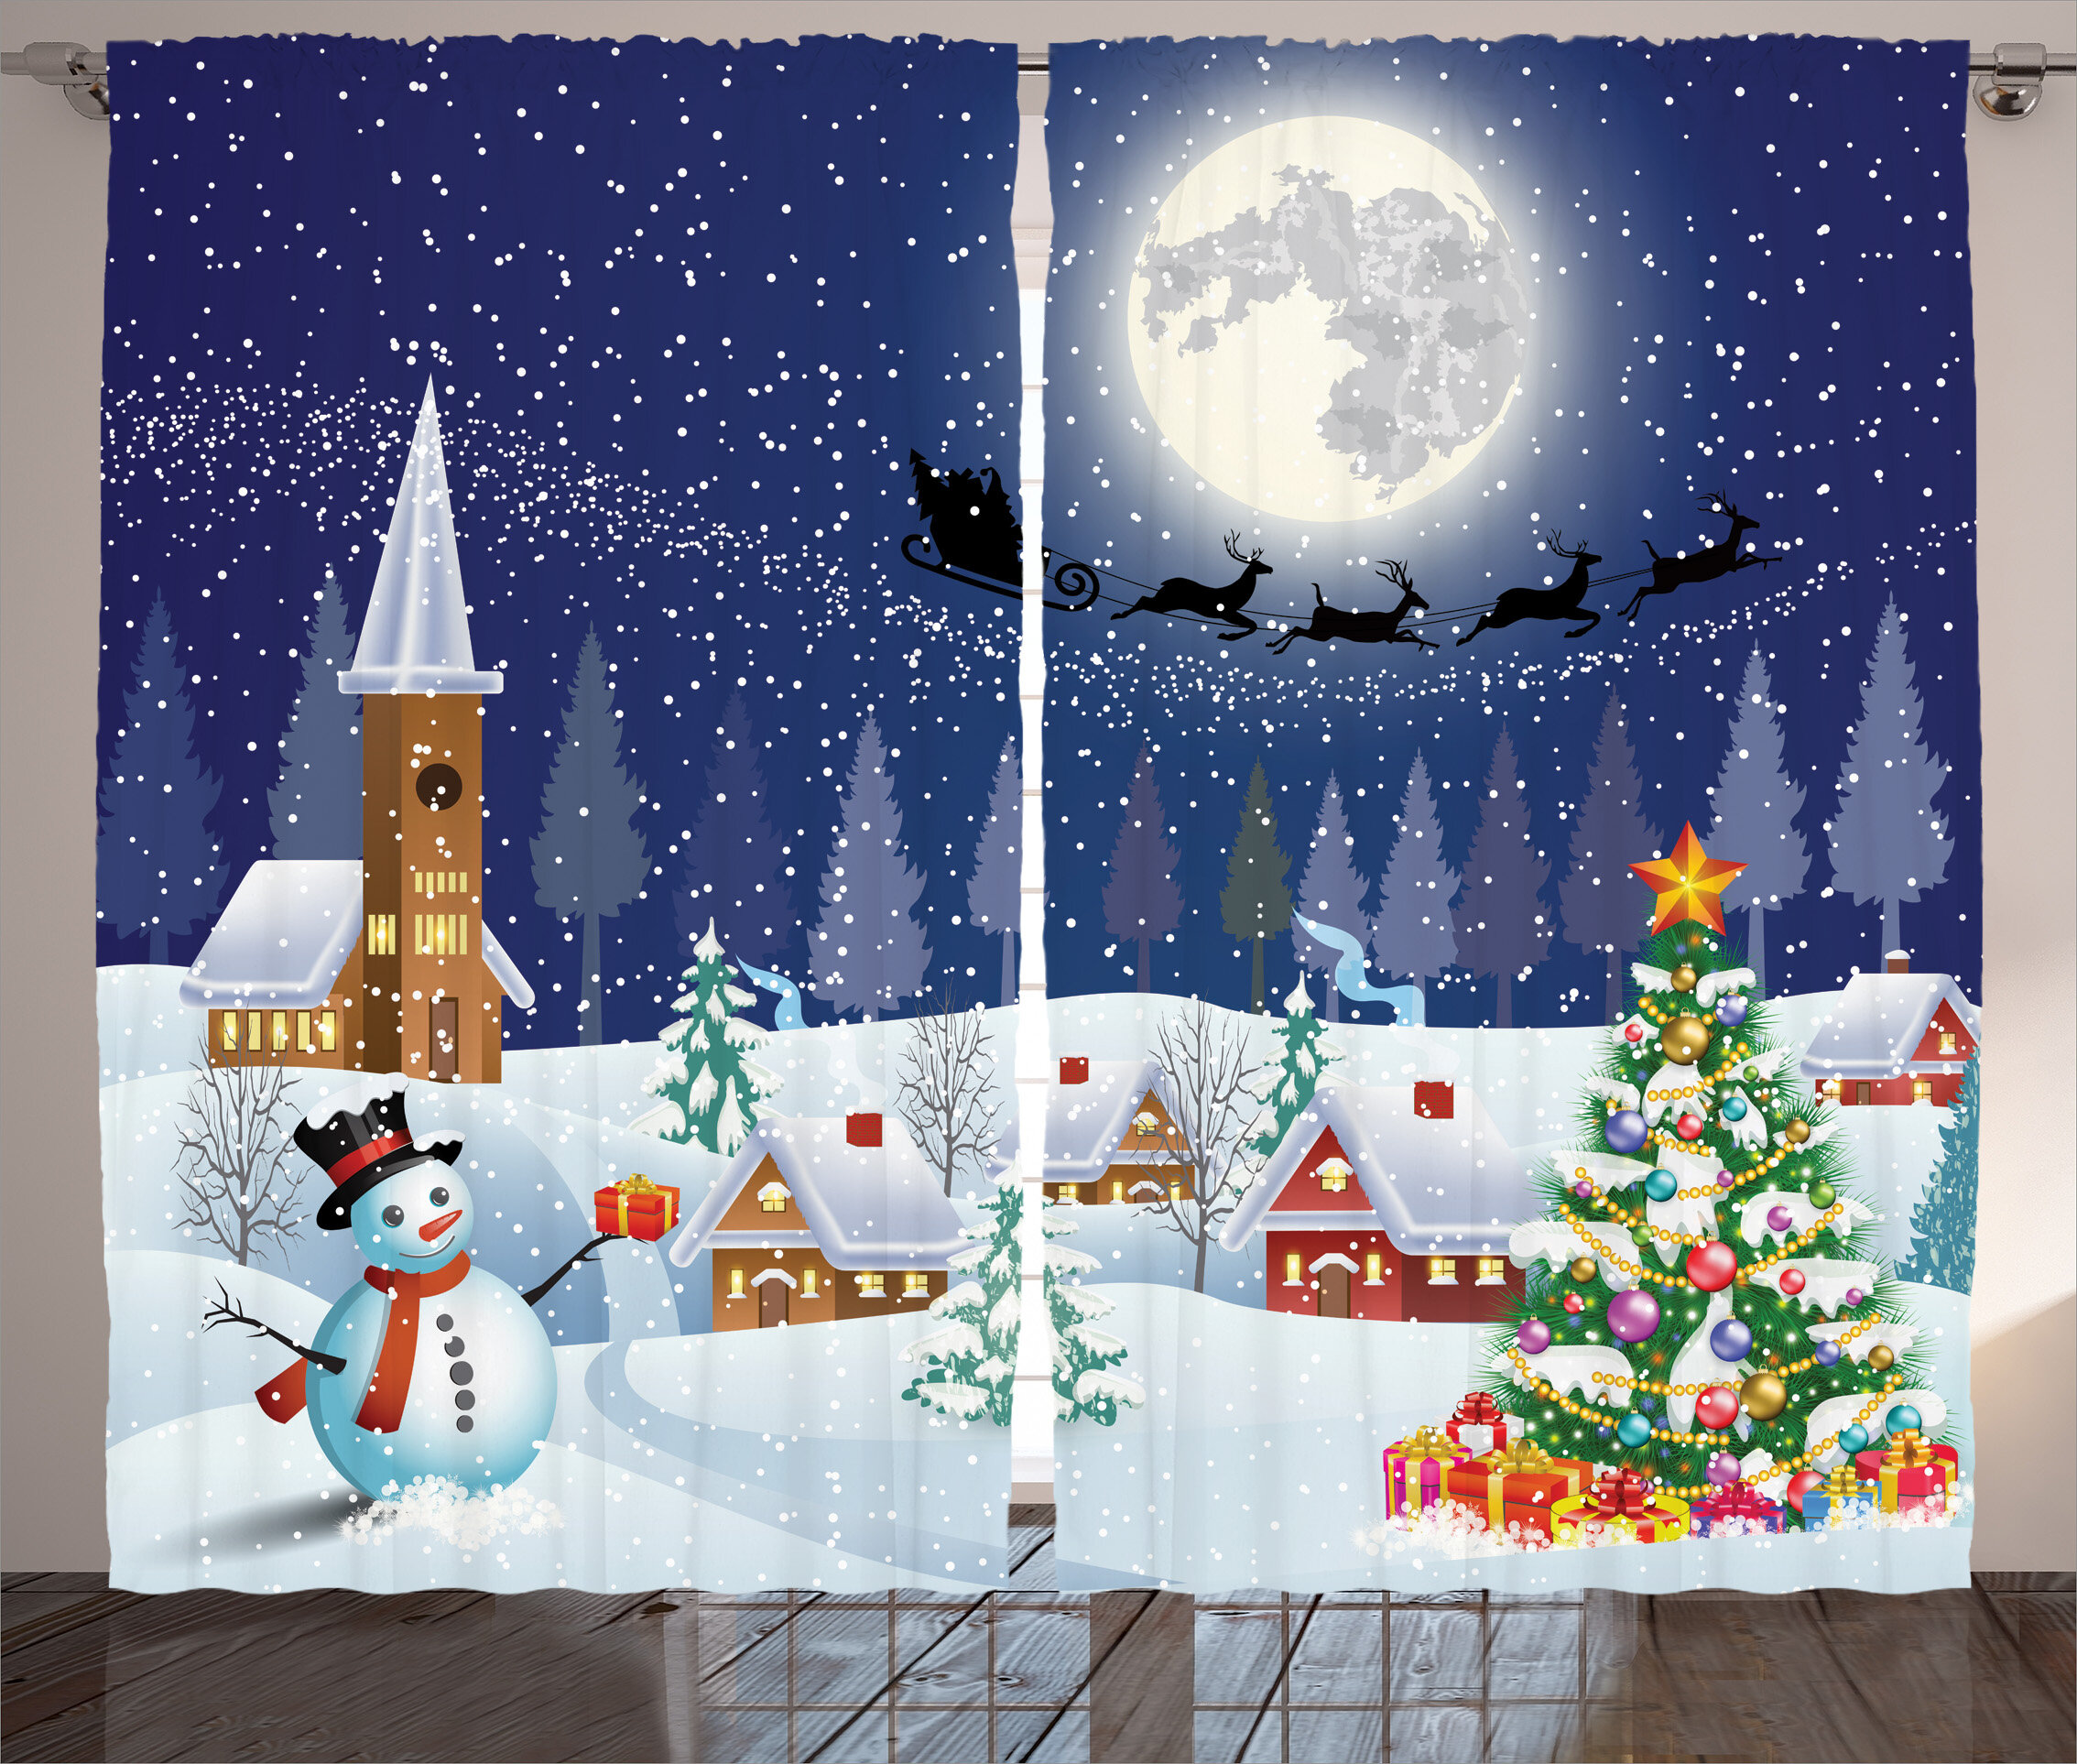 Christmas Decorations Winter Snowman Xmas Tree Santa Sleigh Church Moon Gifts Snow Stars Graphic Print Text Semi Sheer Rod Pocket Curtain Panels